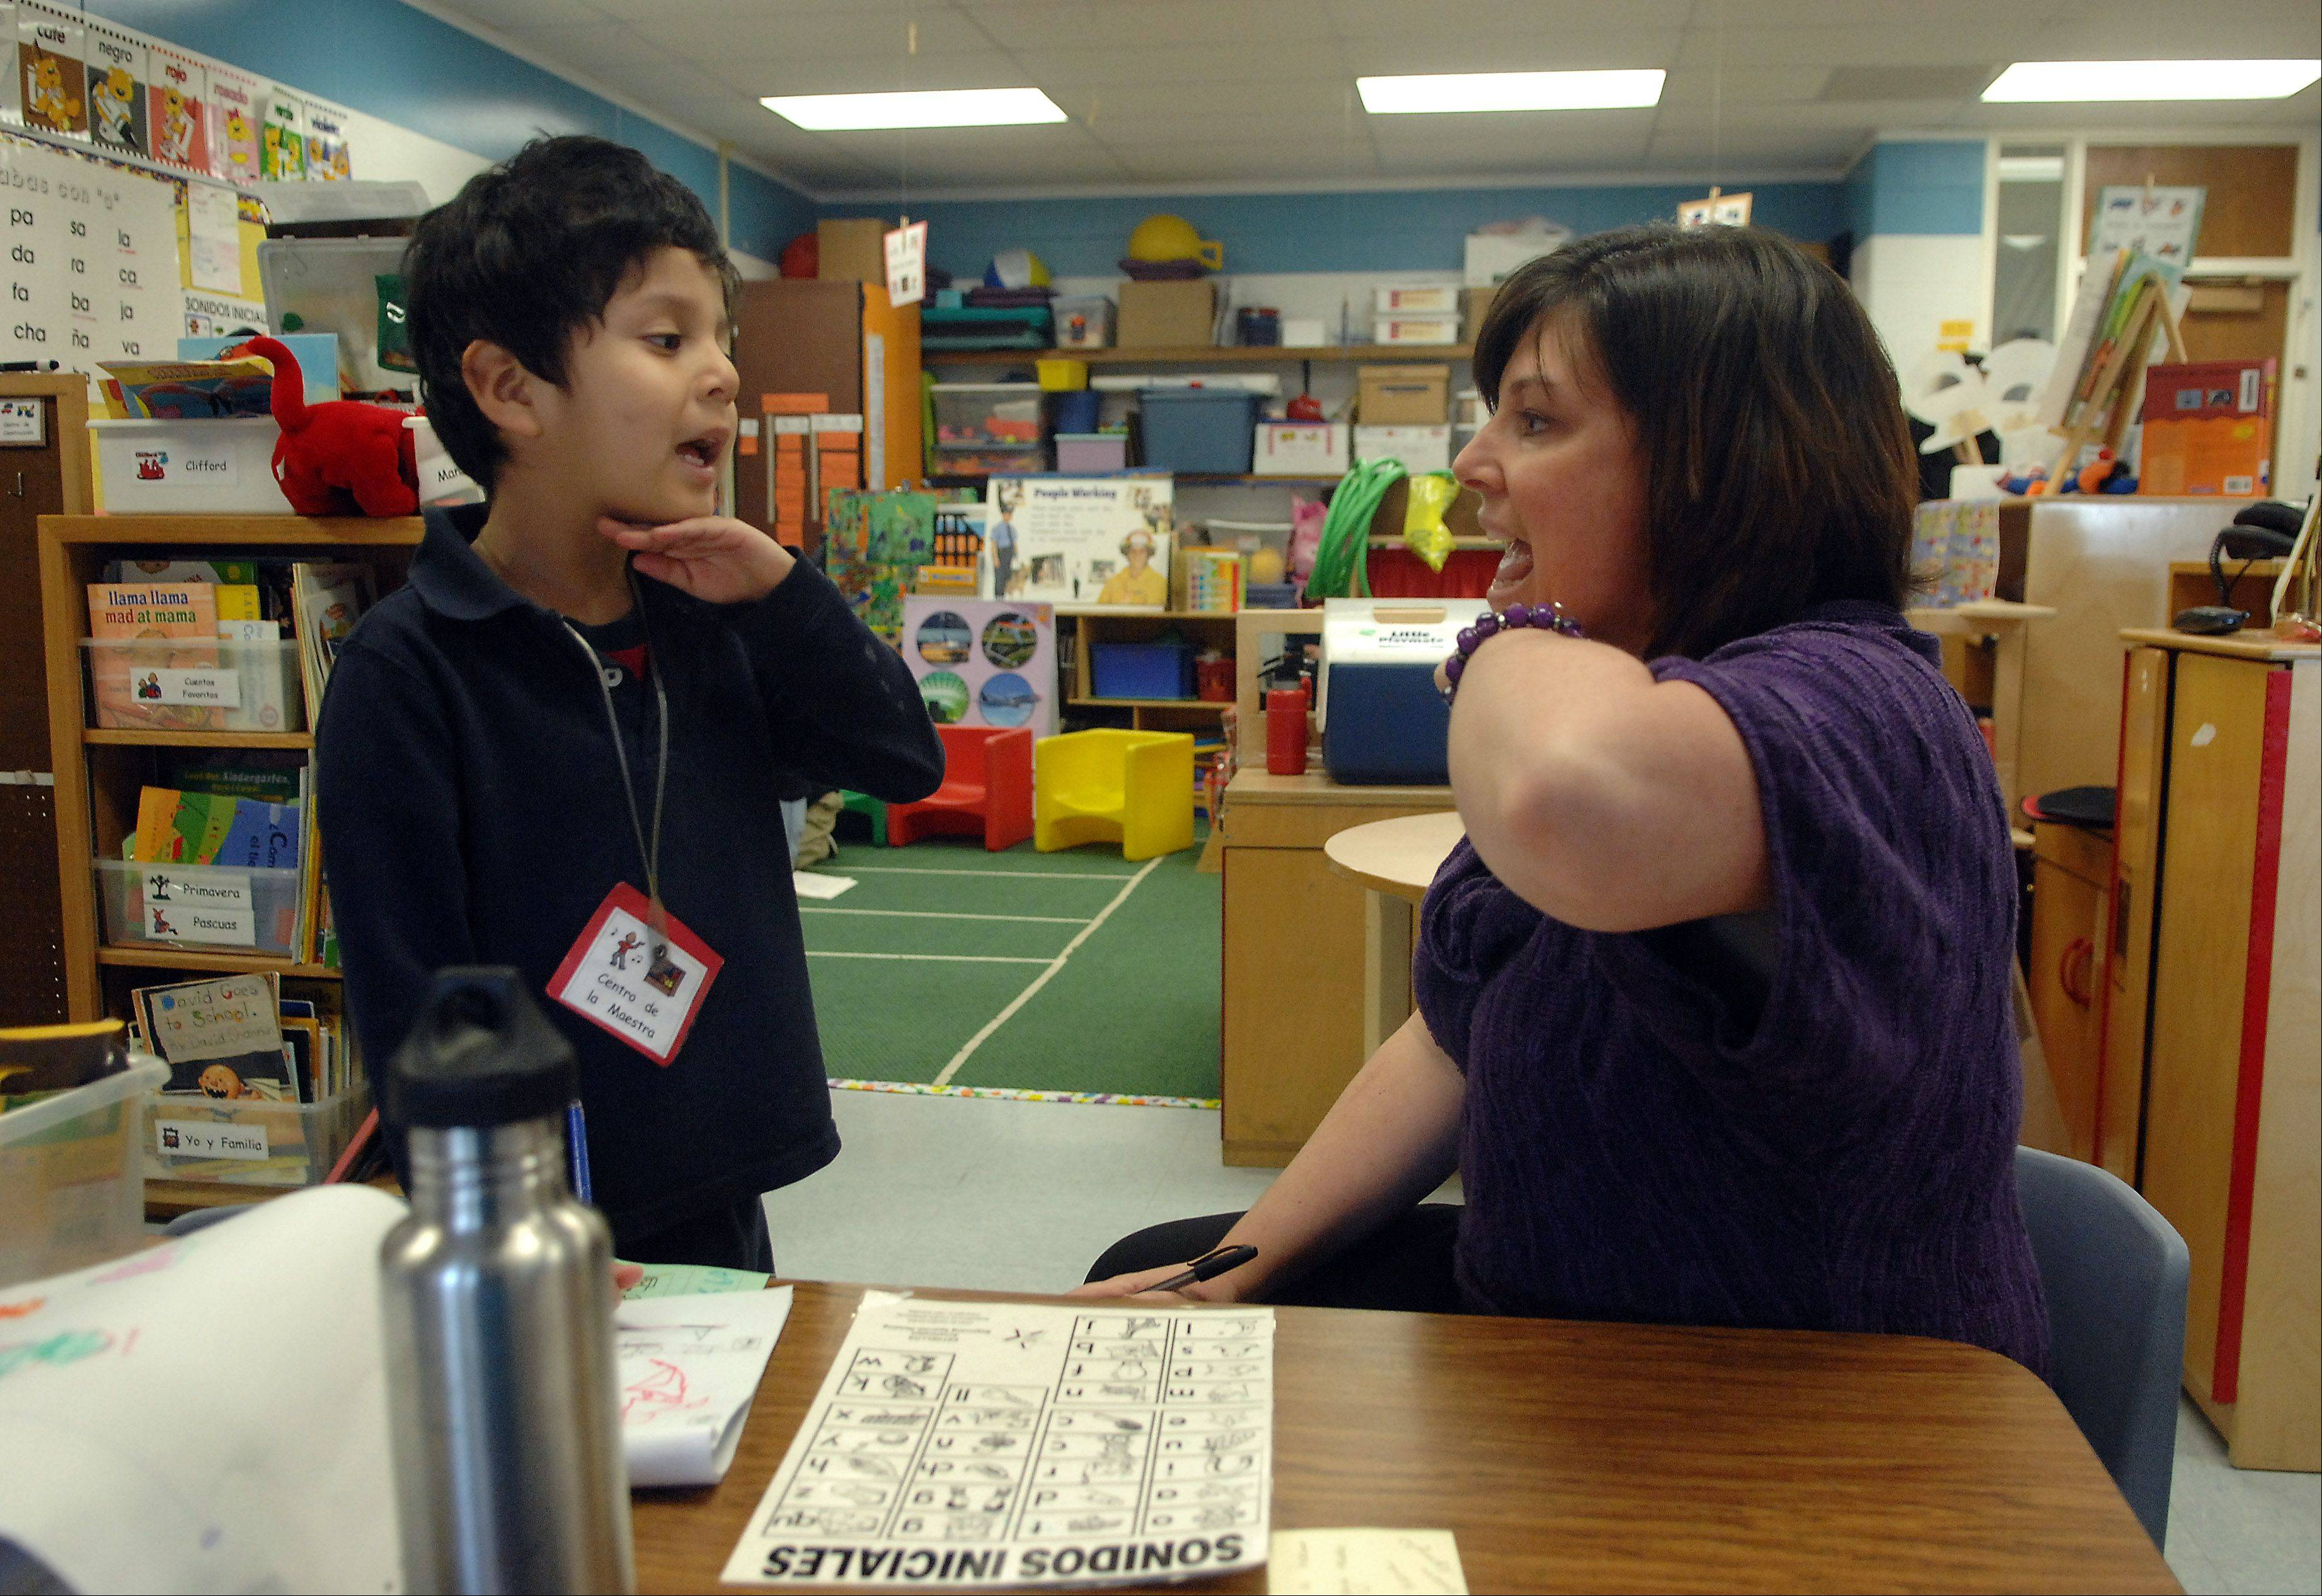 Garfield Elementary School kindergarten teacher Angie Gallegos works with JoShoa Olvera on his English pronunciation. Gallegos constantly documents classroom behavior as part of a new assessment of kindergartners on their school readiness.